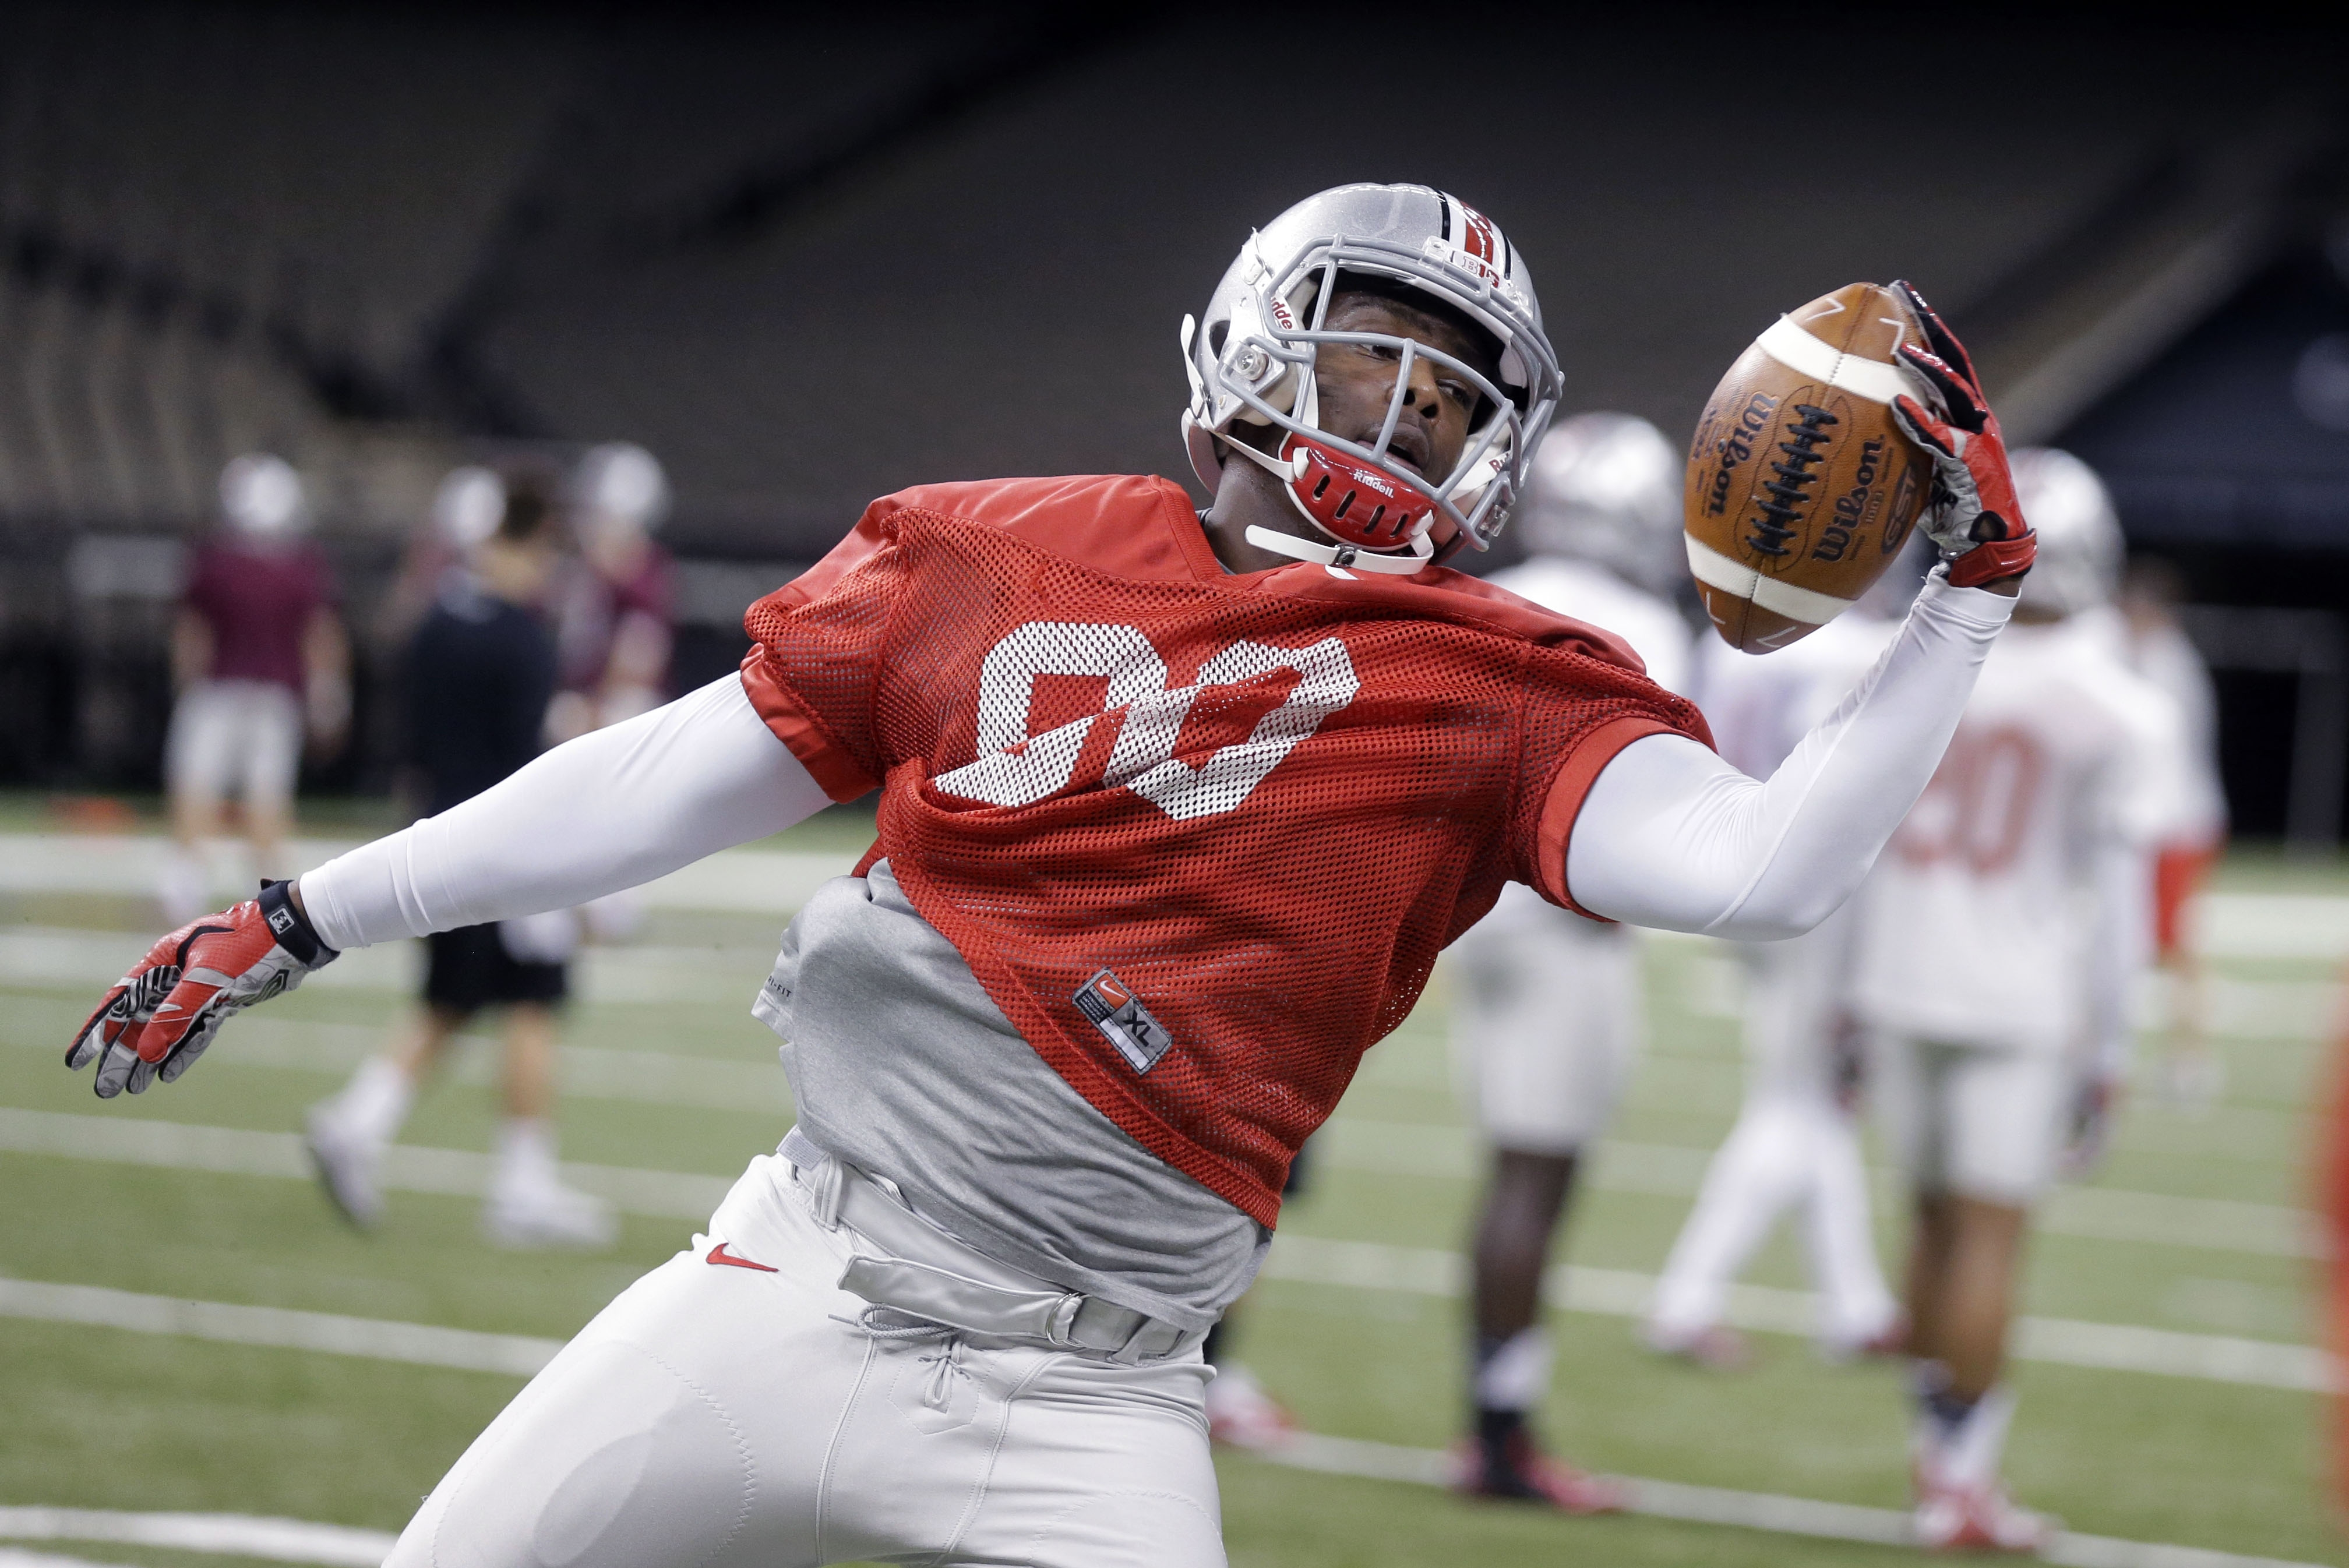 Ohio State wide receiver Noah Brown (80) goes through drills during practice at the Mercedes-Benz Superdome in New Orleans, Monday, Dec. 29, 2014. They will square off against Alabama in the Allstate Sugar Bowl NCAA football game, which will be played Jan